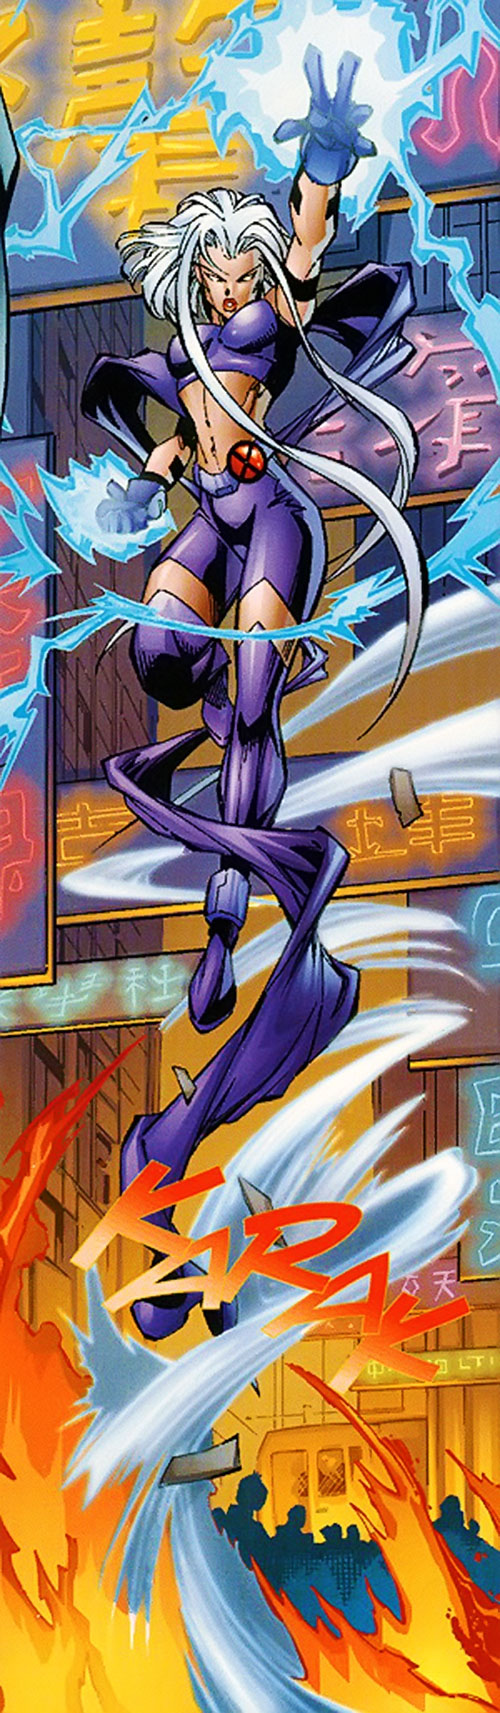 Storm of the X-Men (Marvel Comics) flying and summoning winds